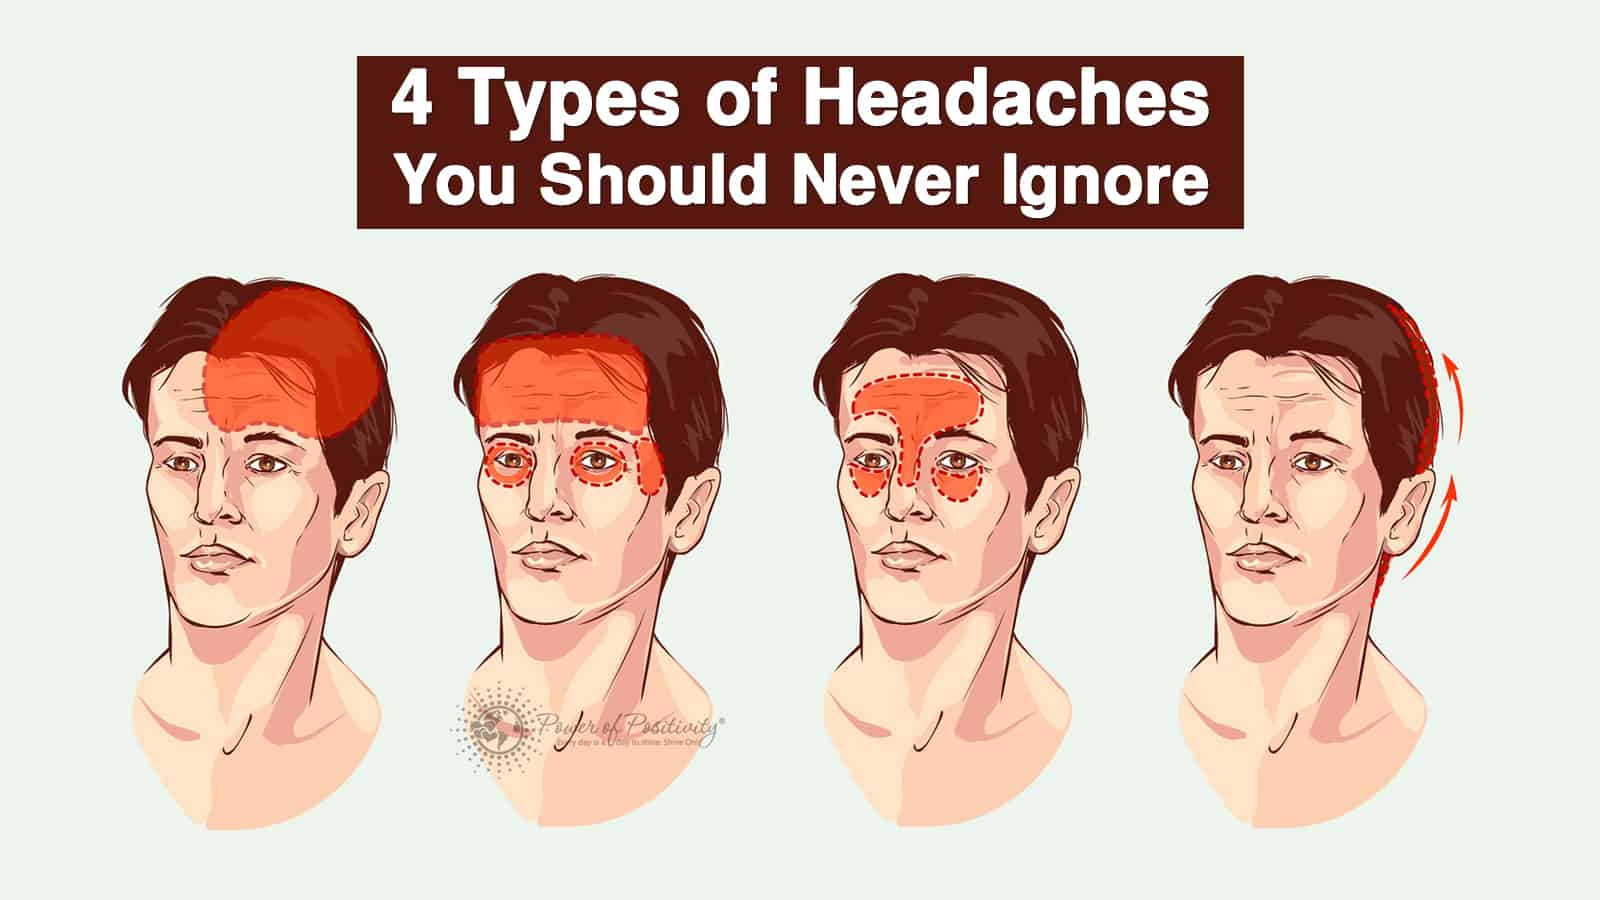 4 Types of Headaches You Should Never Ignore